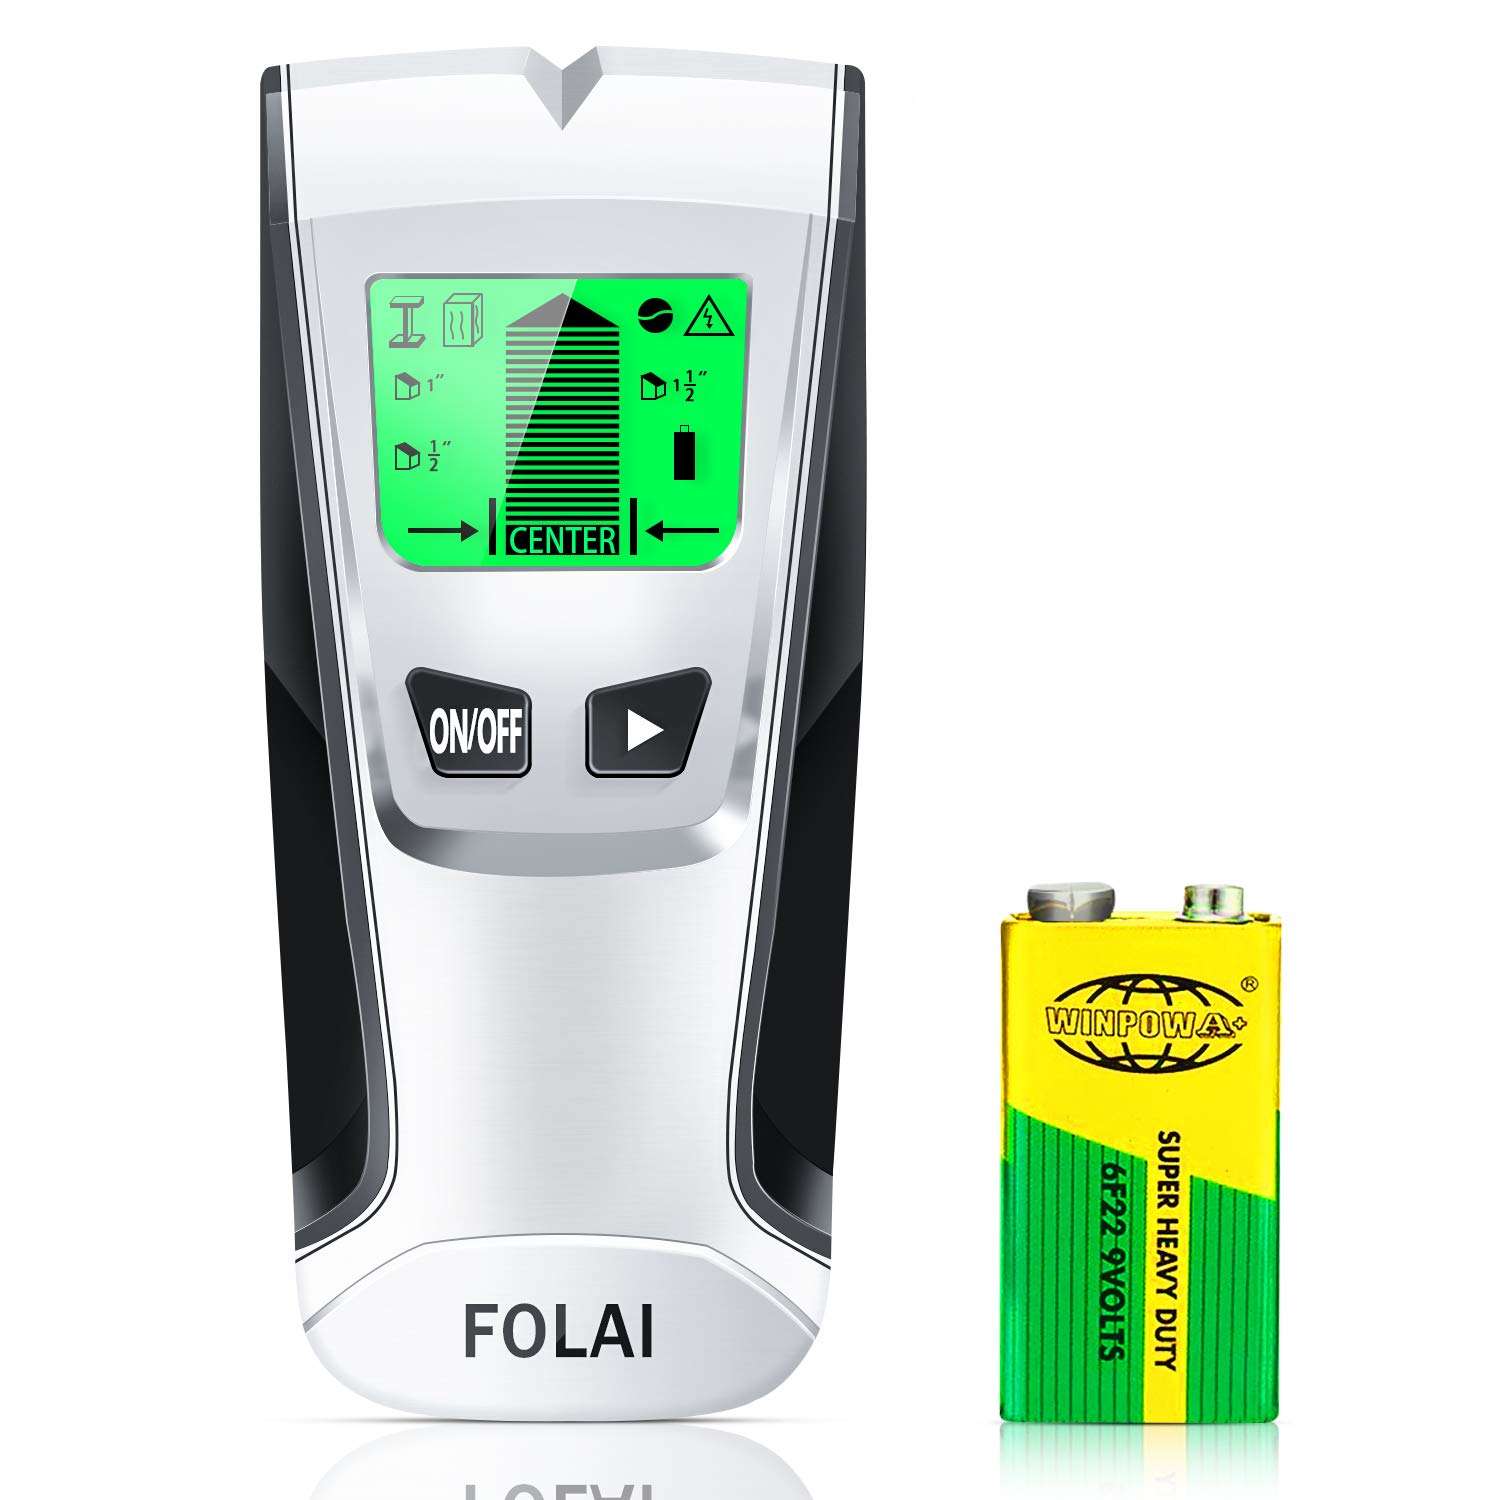 Stud Finder Sensor Wall Scanner -4 in 1 Electronic Stud Posi Tioner with Digital LCD Display,Central Positioning Stud Sensor and Sound Alarm are Display for Wood AC Wire Metal Studs Detection by FOLAI